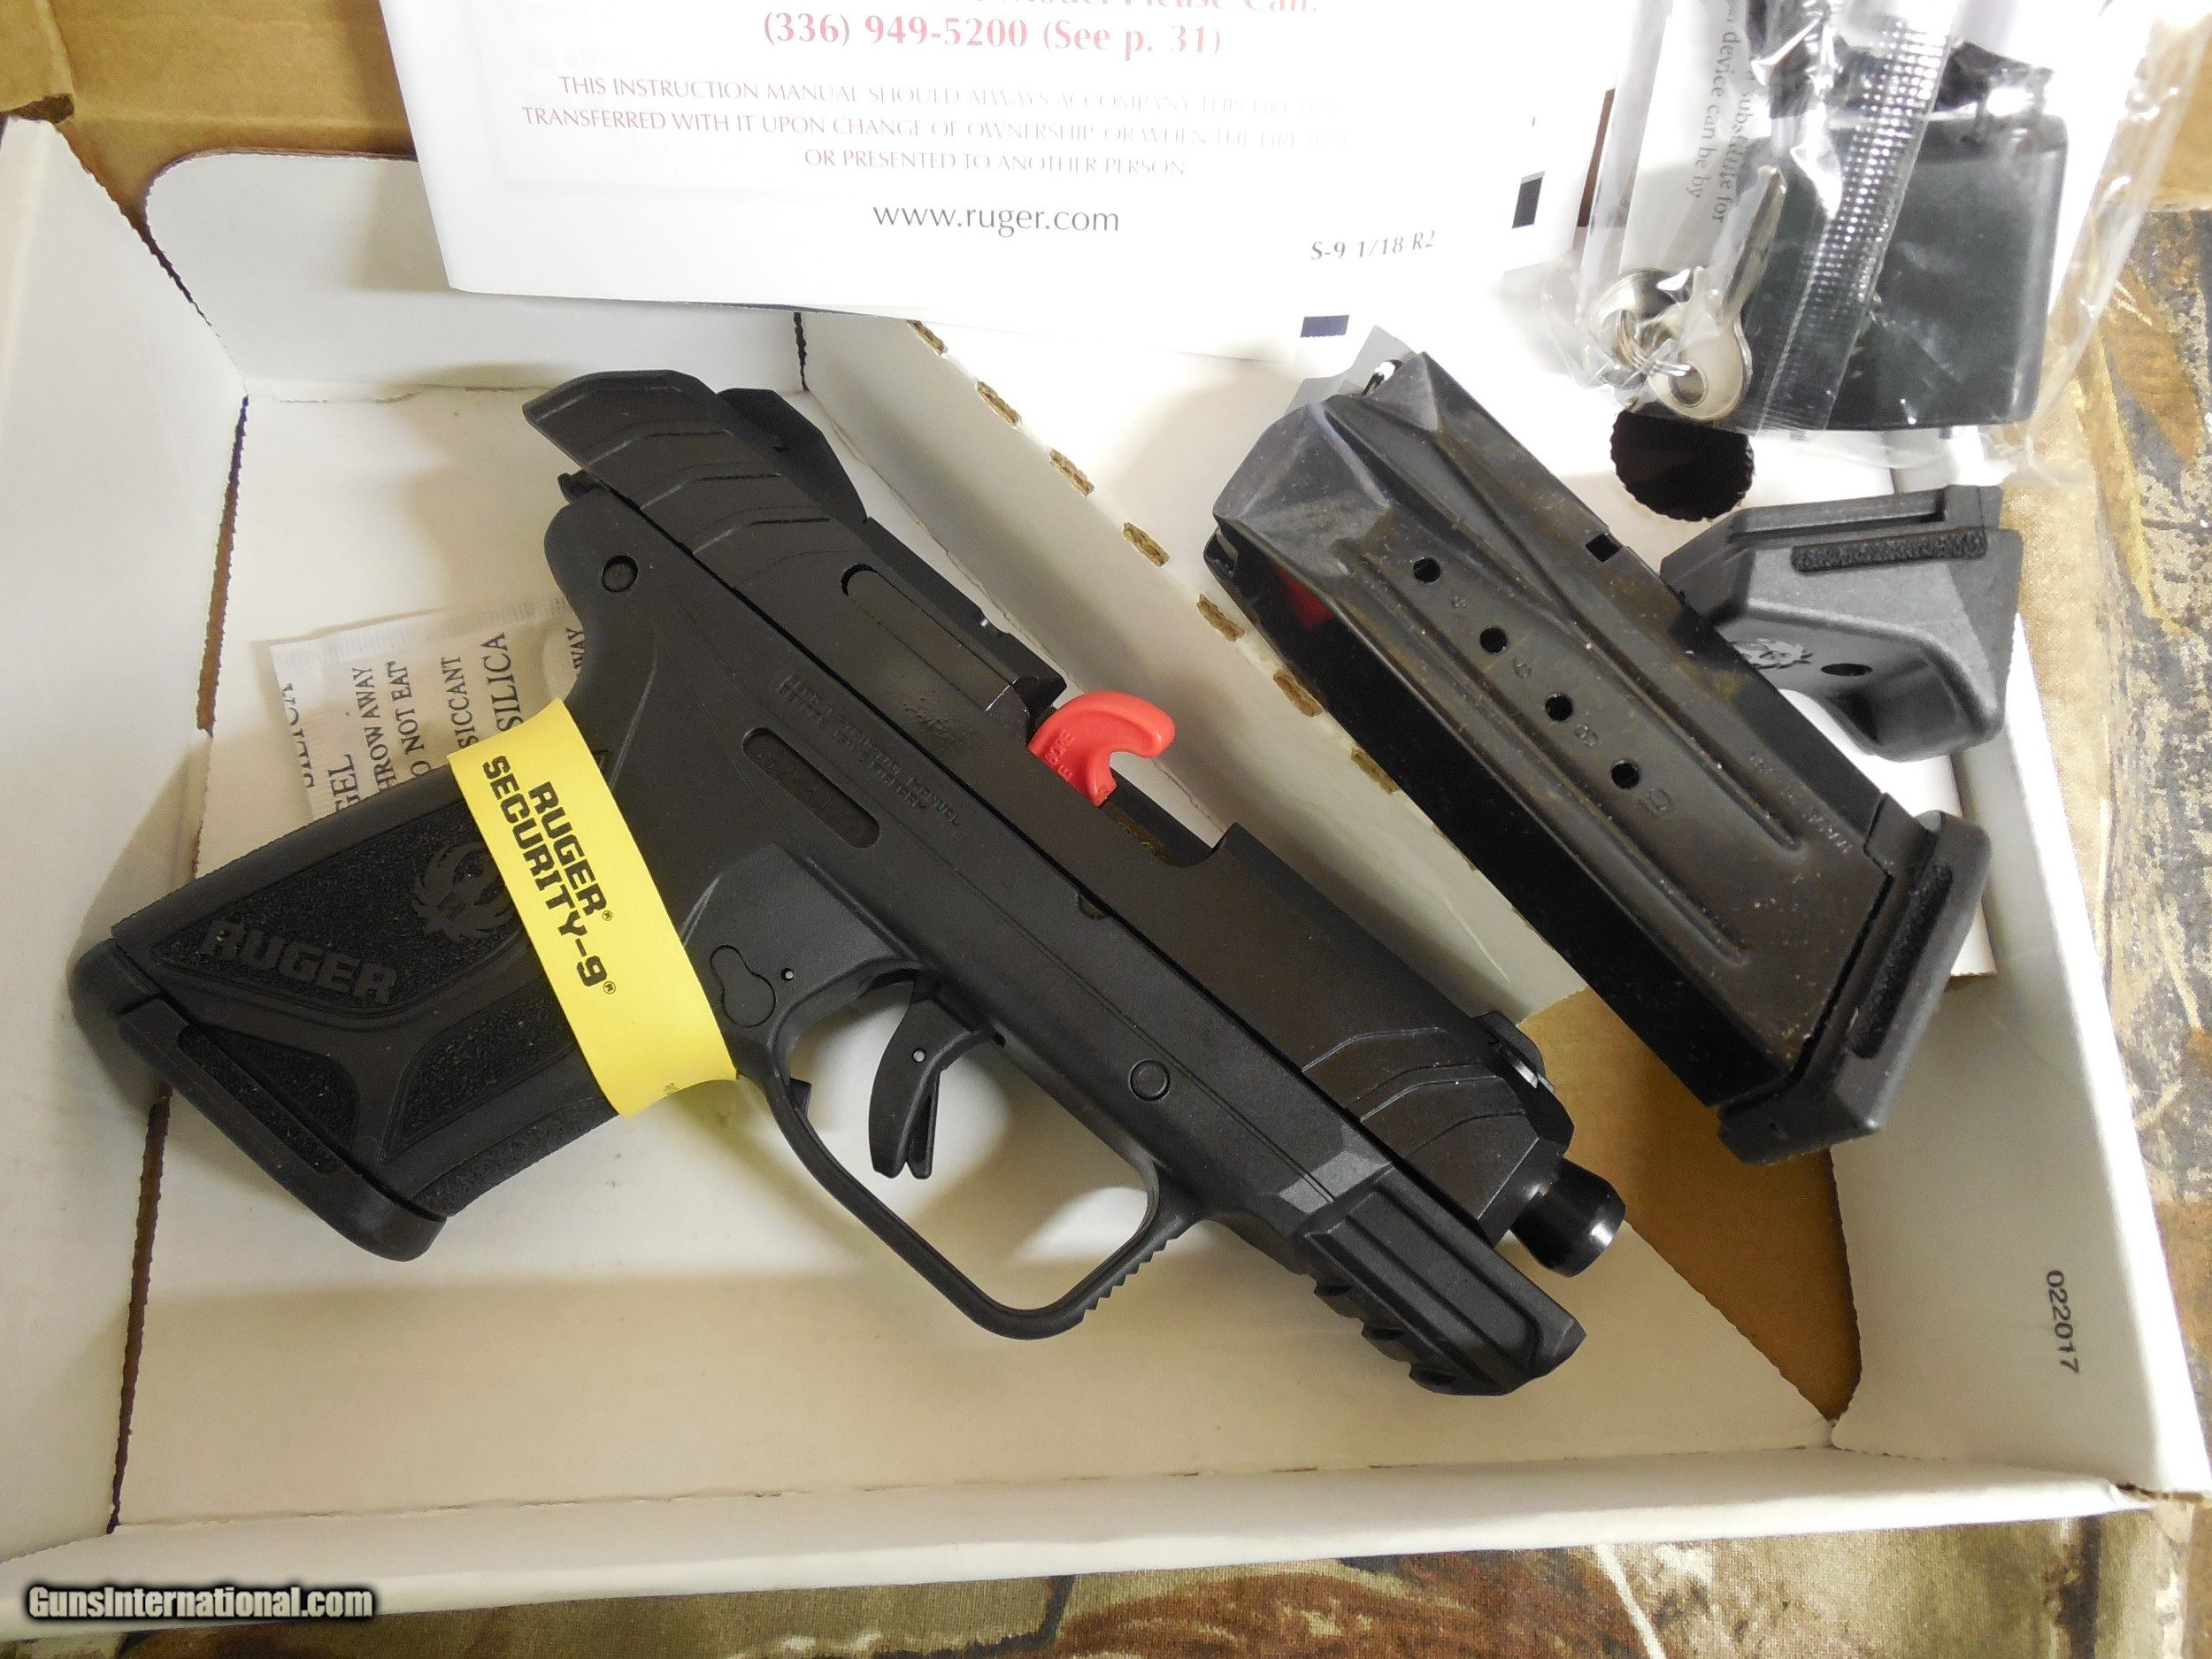 RUGER # 03818, SECURITY- 9, COMPACT, 2 - 10 ROUND MAGAZINES